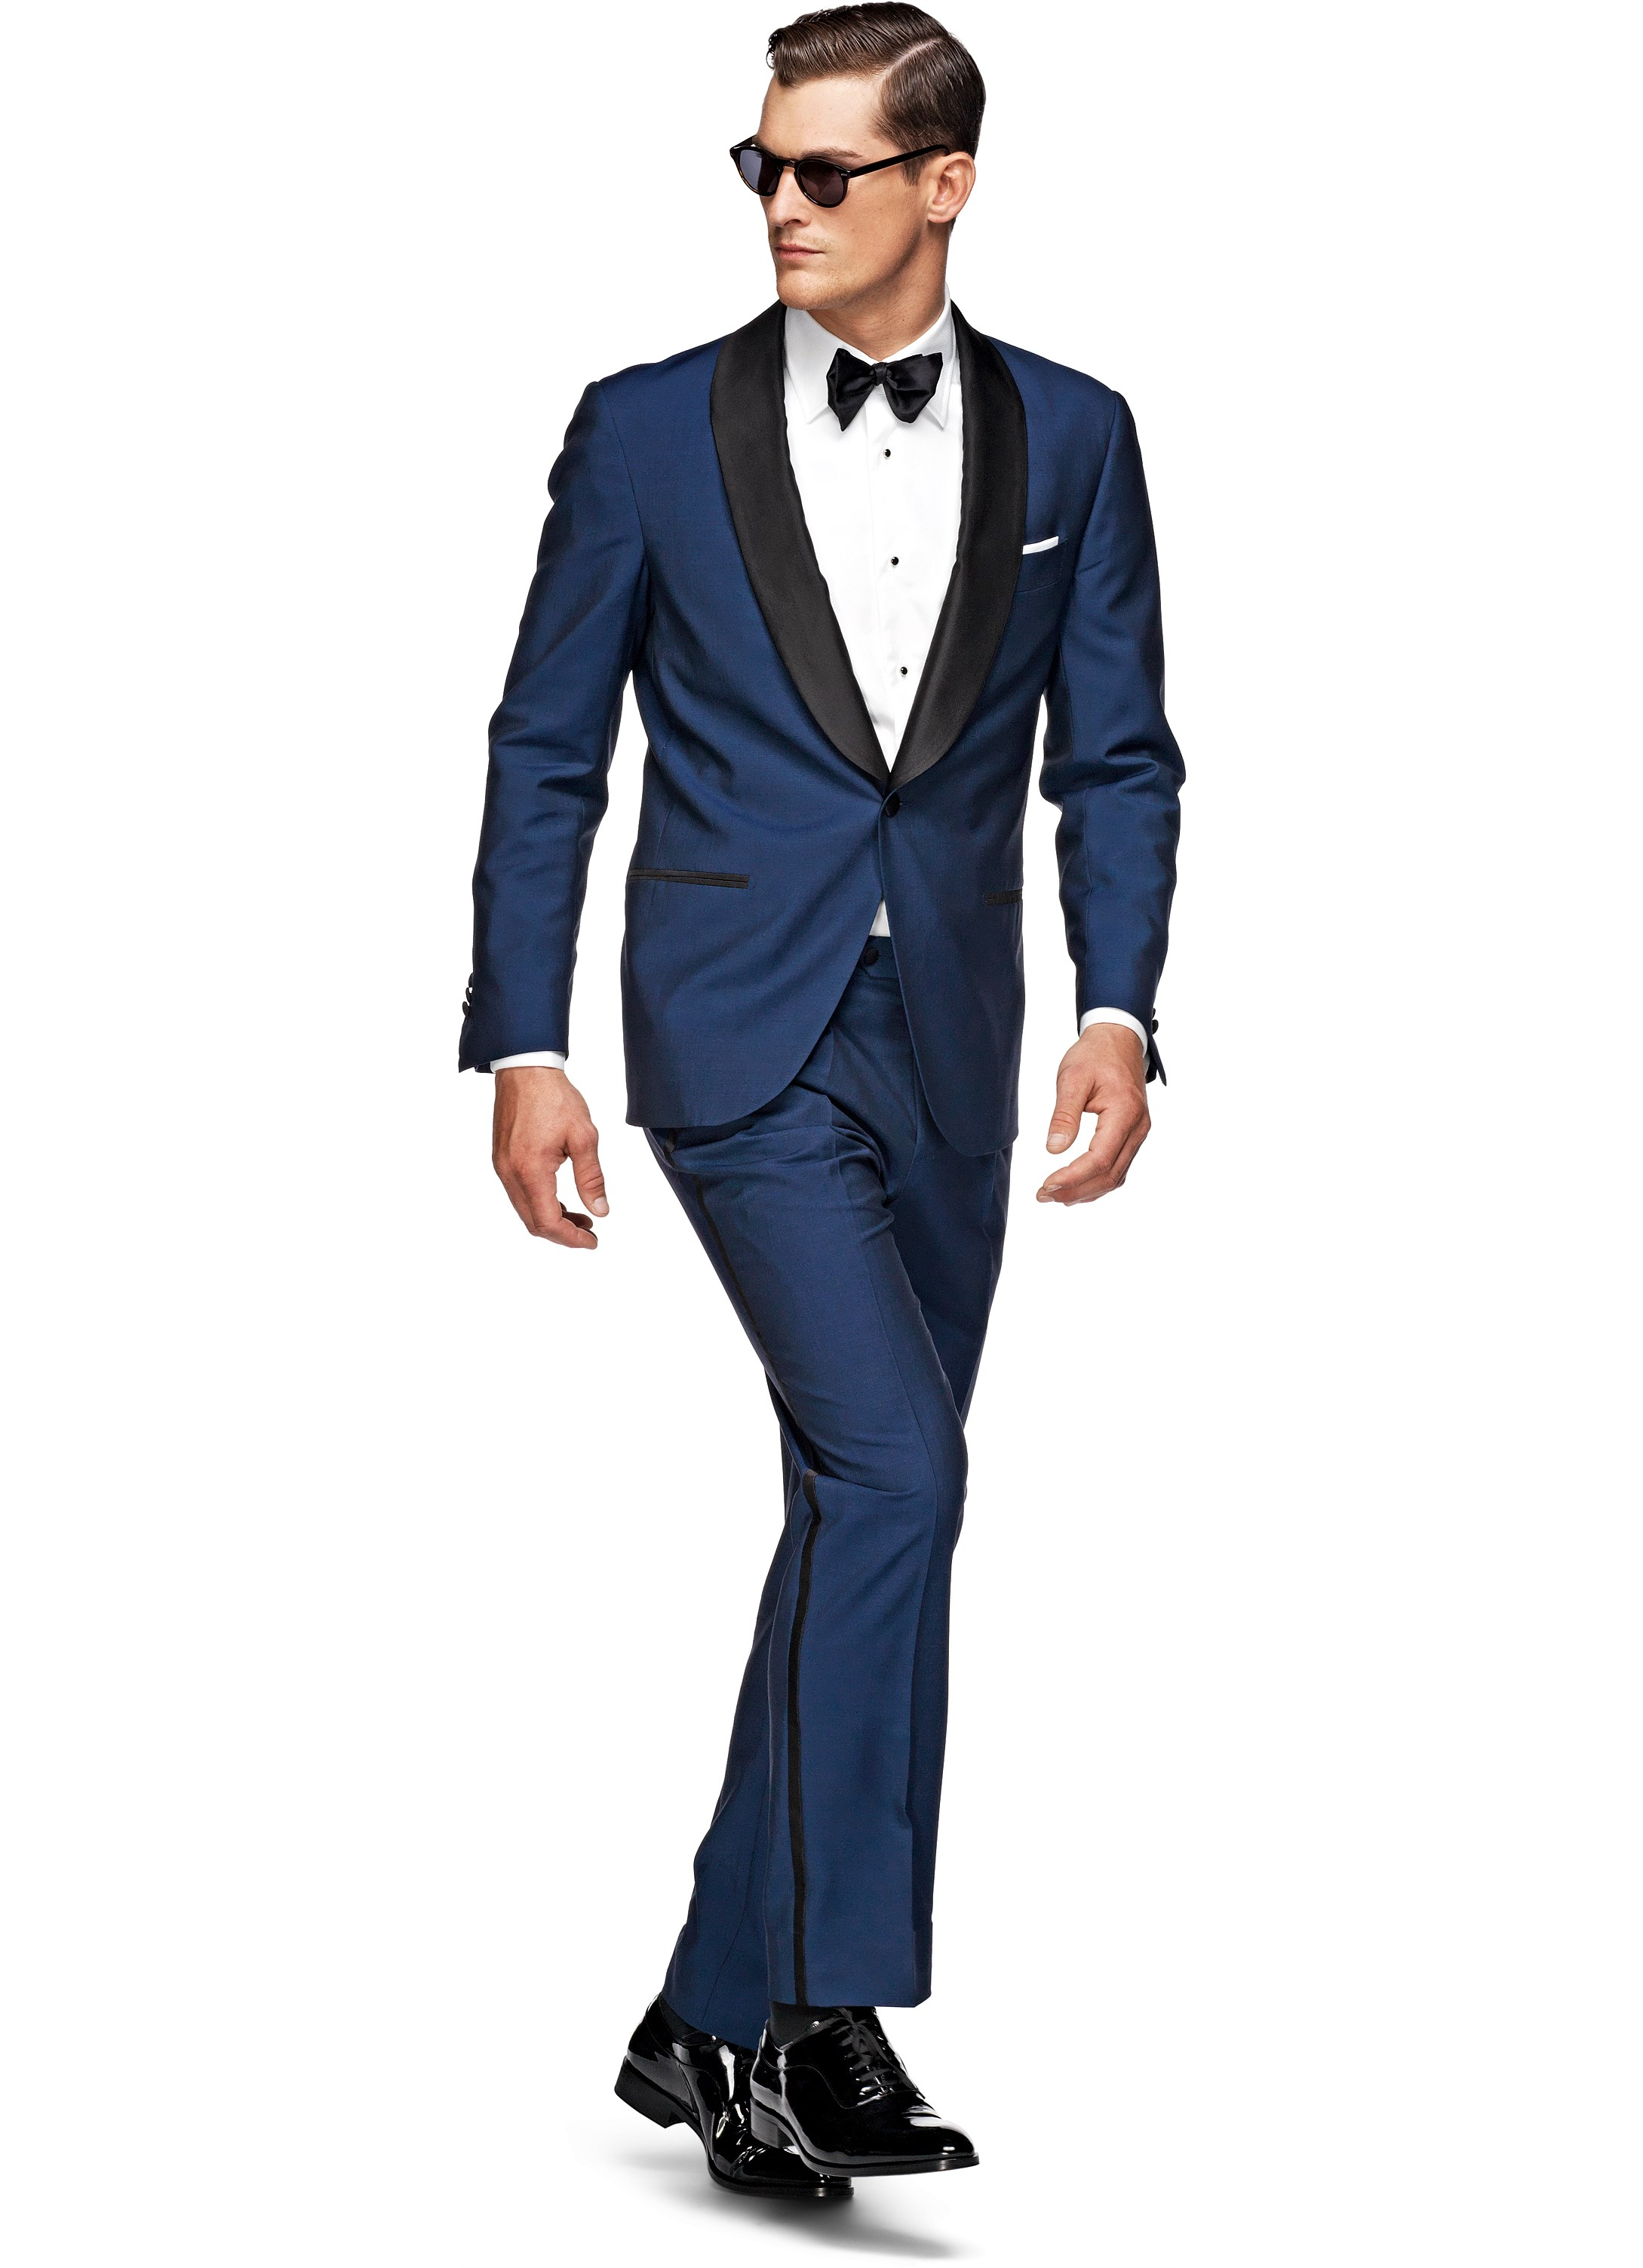 Shop for men's tuxedos, black tie, tuxedo jackets & accessories including formal shirts, pants, shoes, vests, cummerbunds & more at Men's Wearhouse. Quick View Content This item has been successfully added to your list.